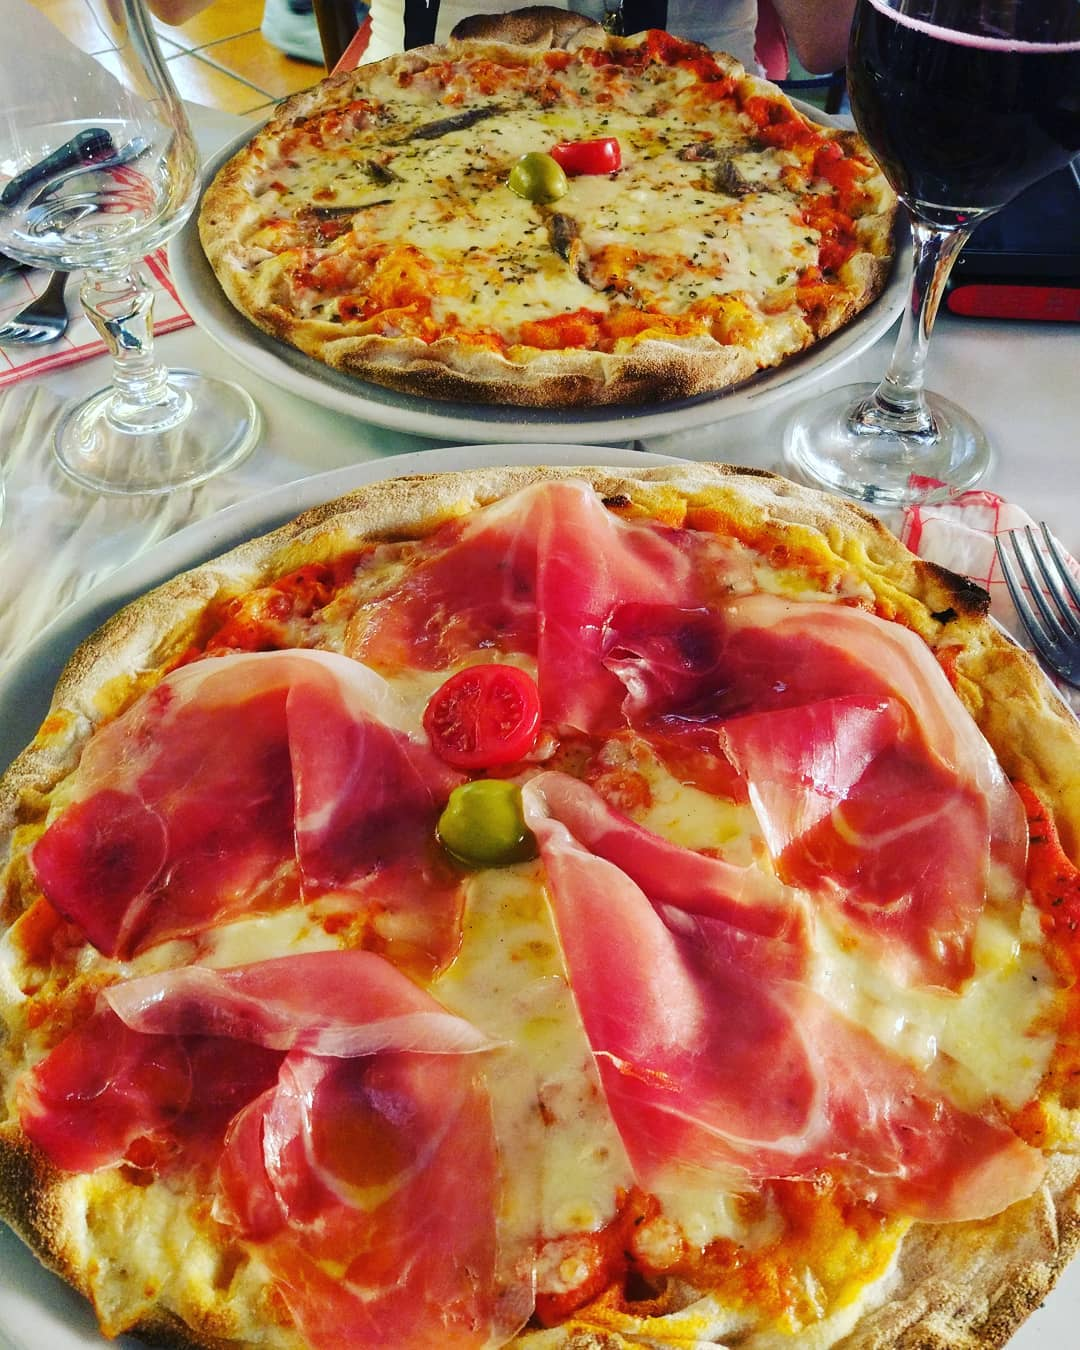 best things to eat in rome, what to eat in rome, things to eat in rome, 5 things to eat in rome, things you need to eat in Rome